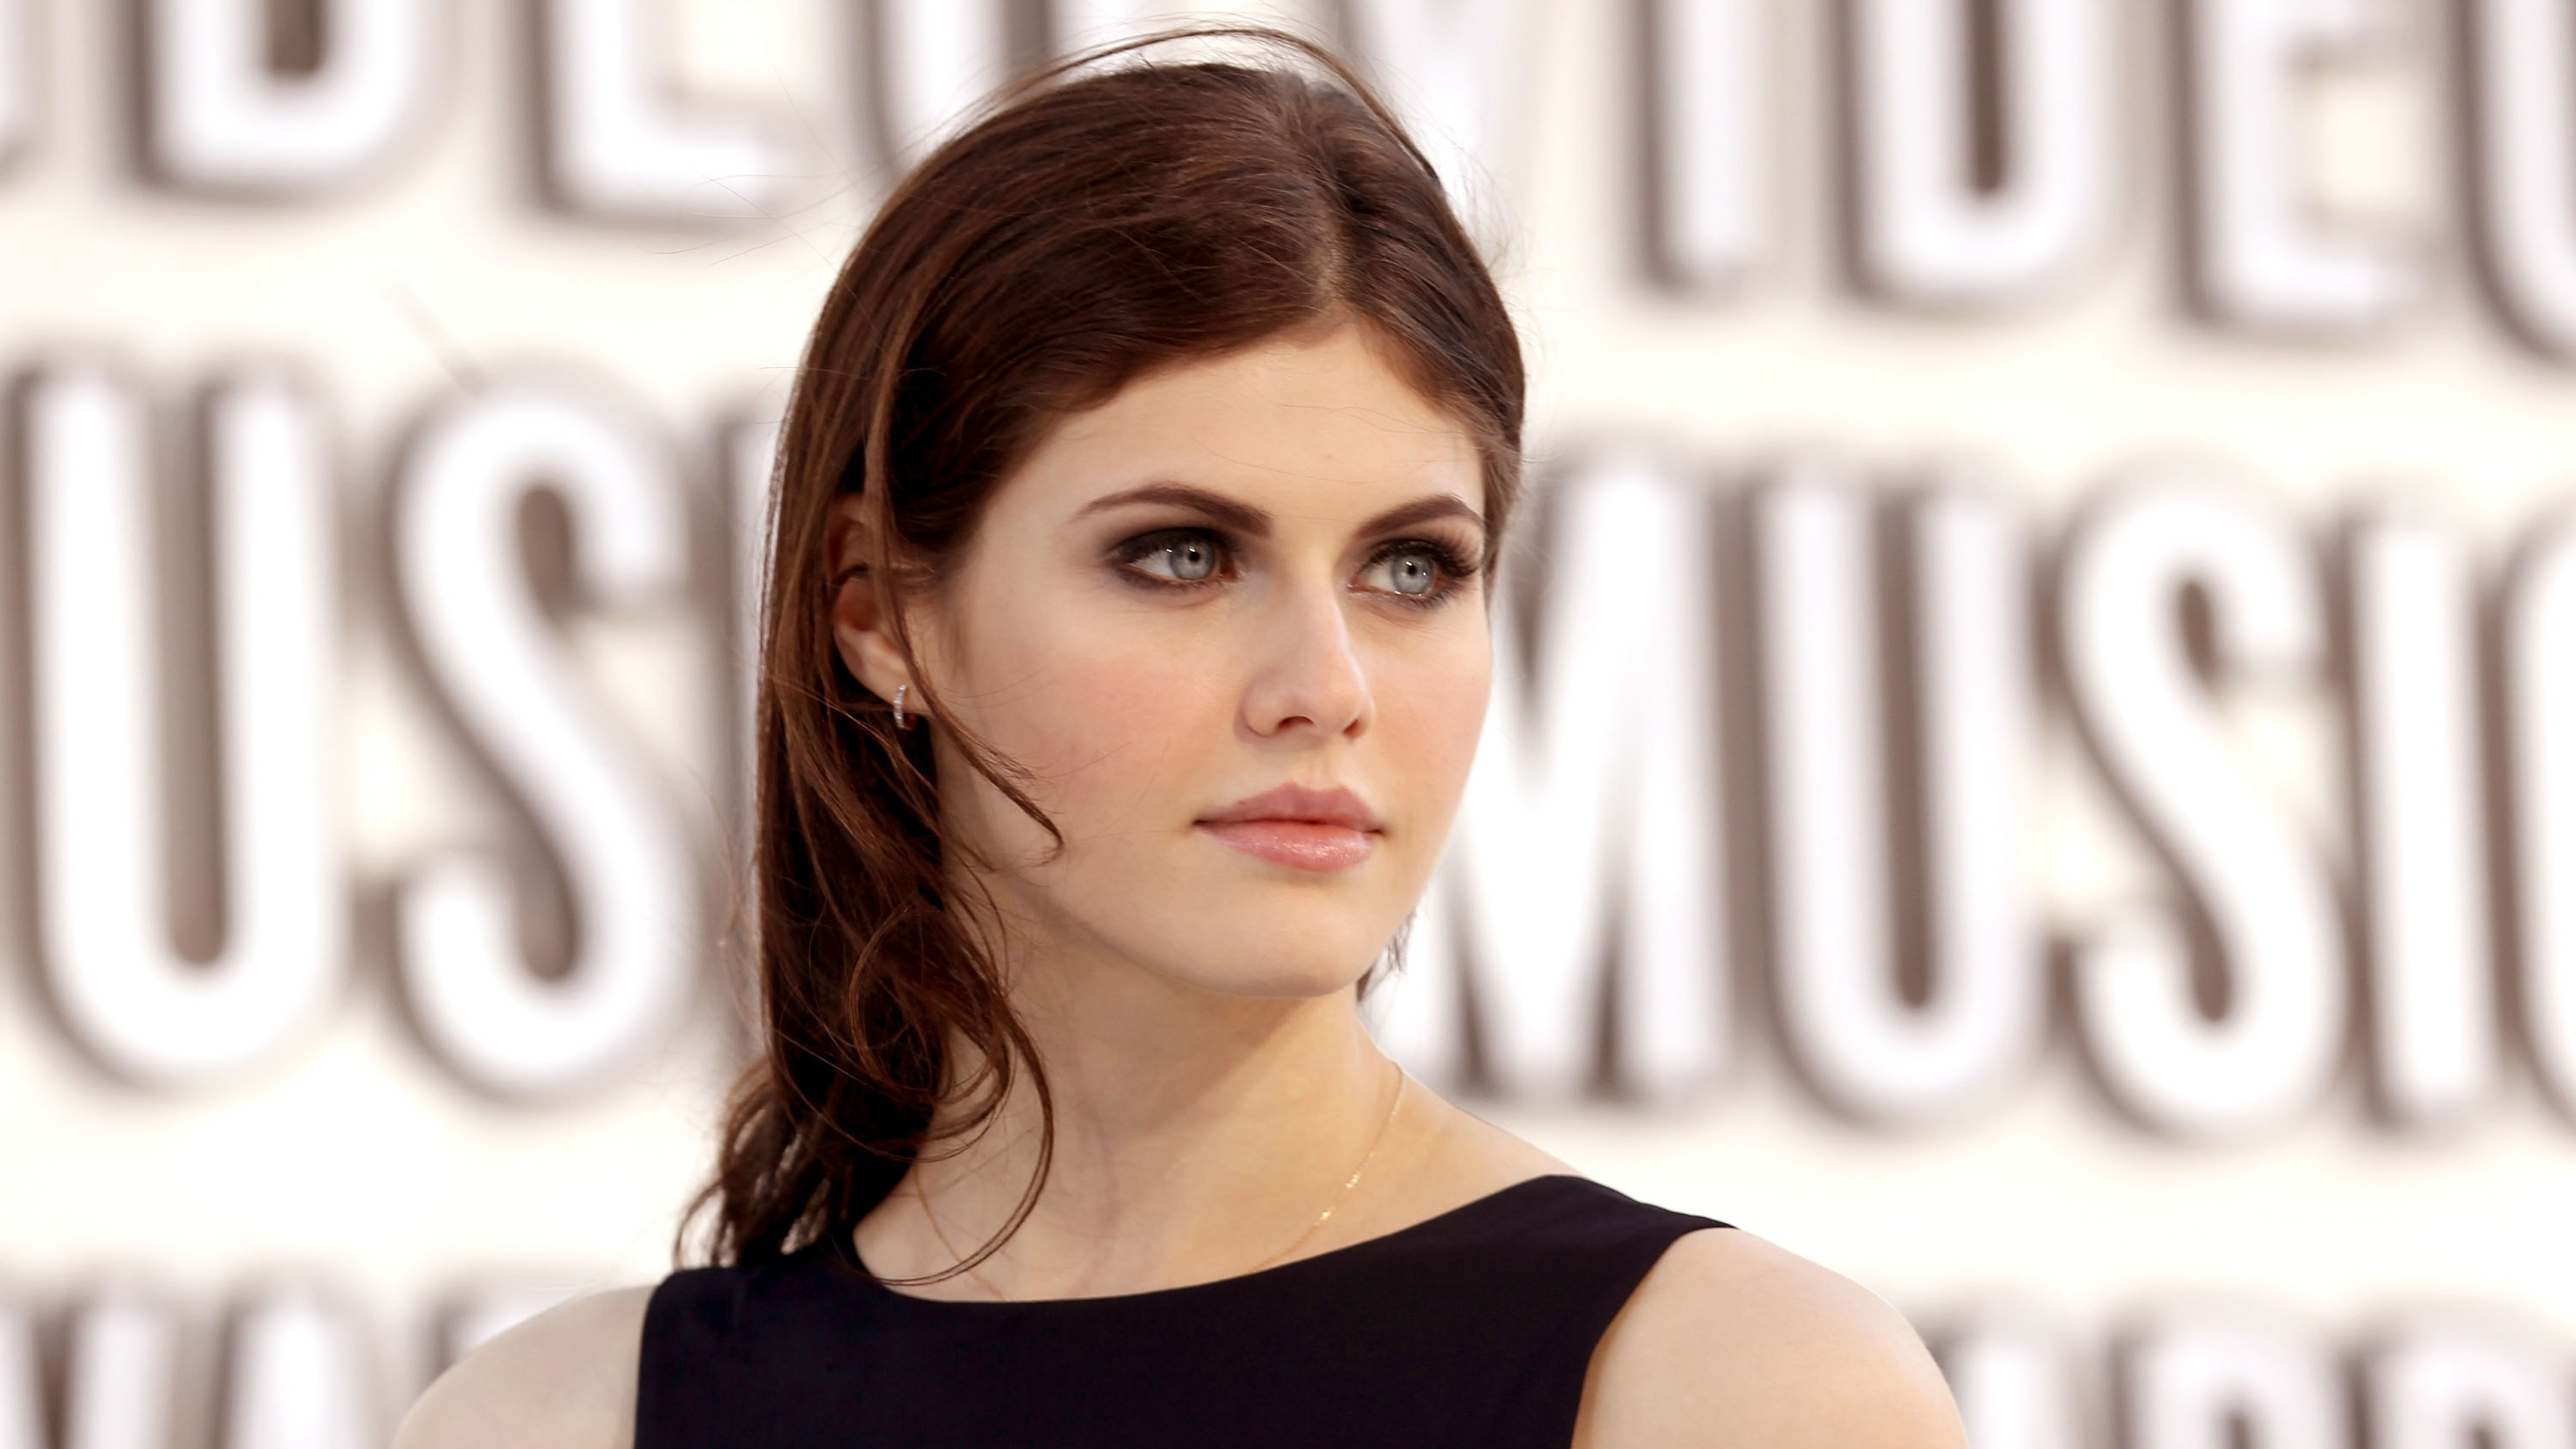 Alexandra Daddario Beautiful Eyes HD 4K Wallpaper